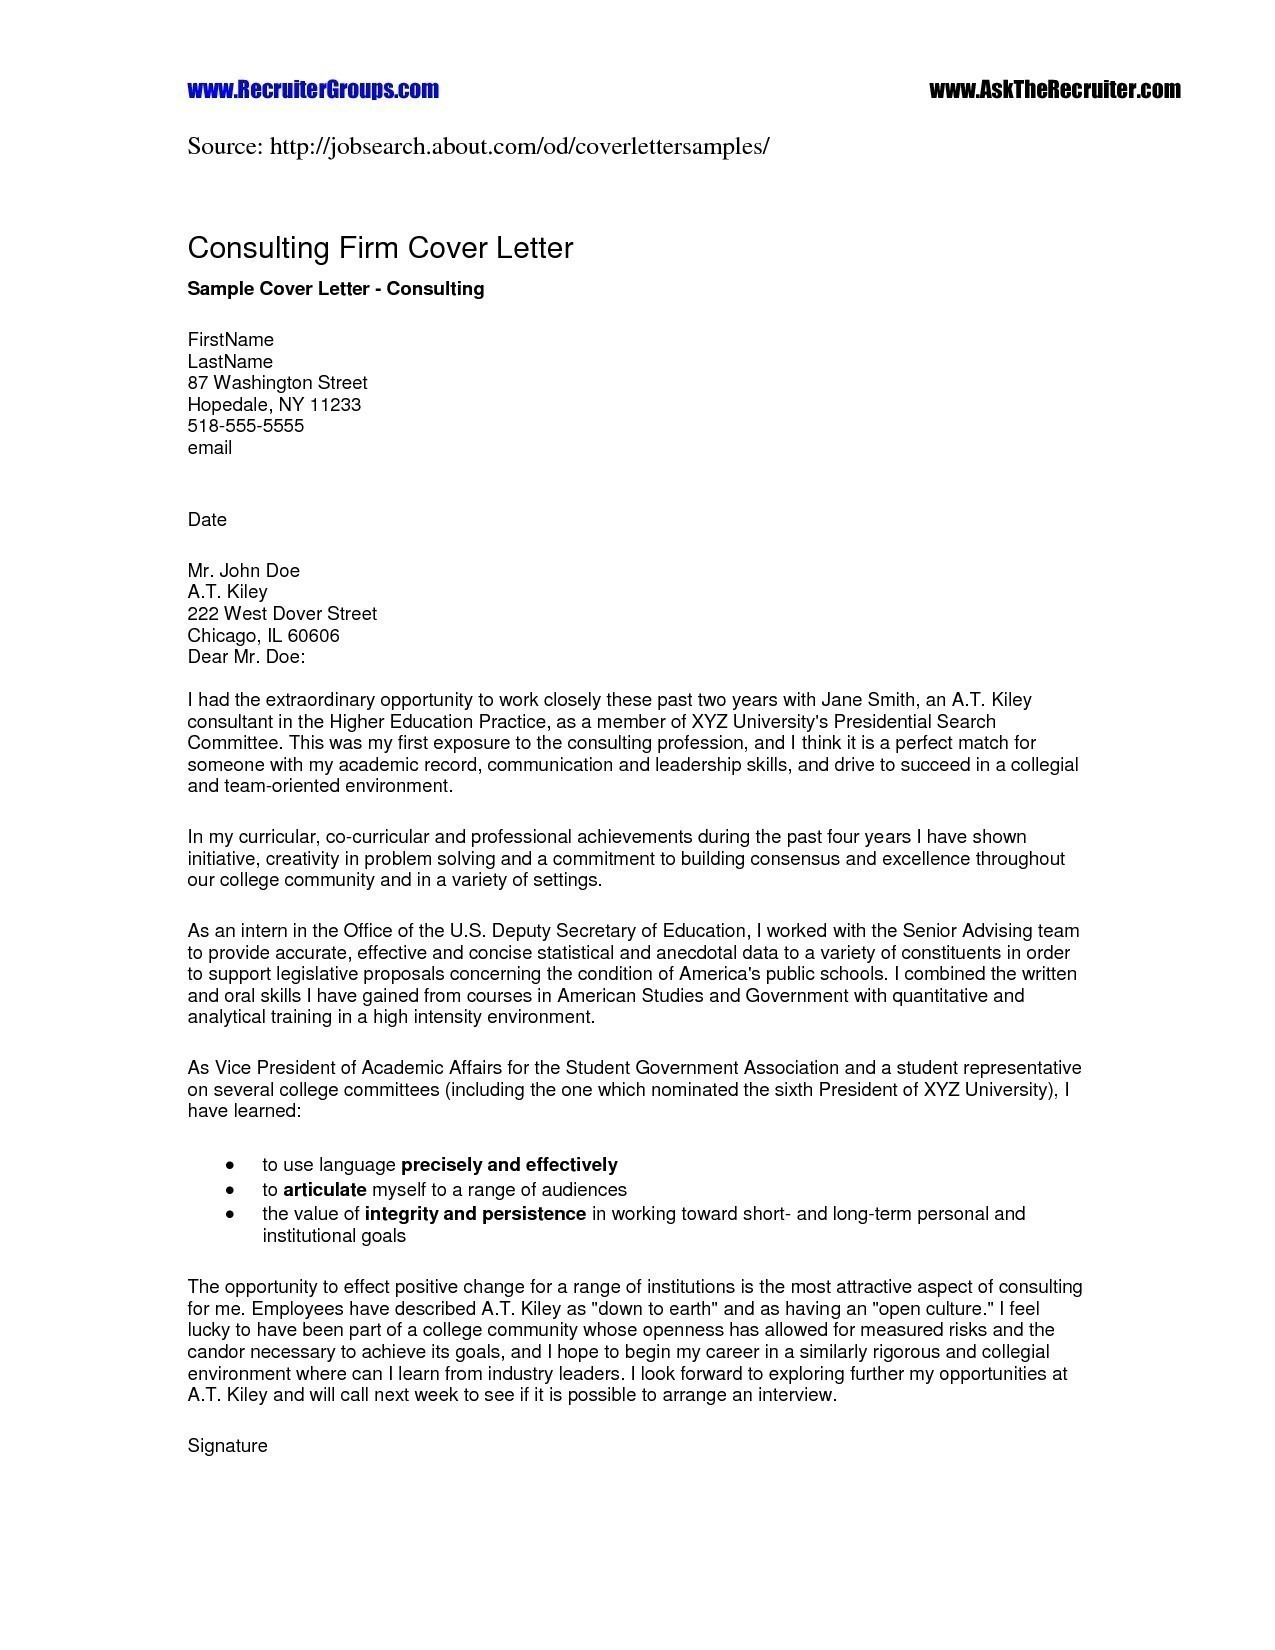 Simple Offer Letter Template - How to Write Job Fer Letter Fresh Job Fer Letter Sample Best Job